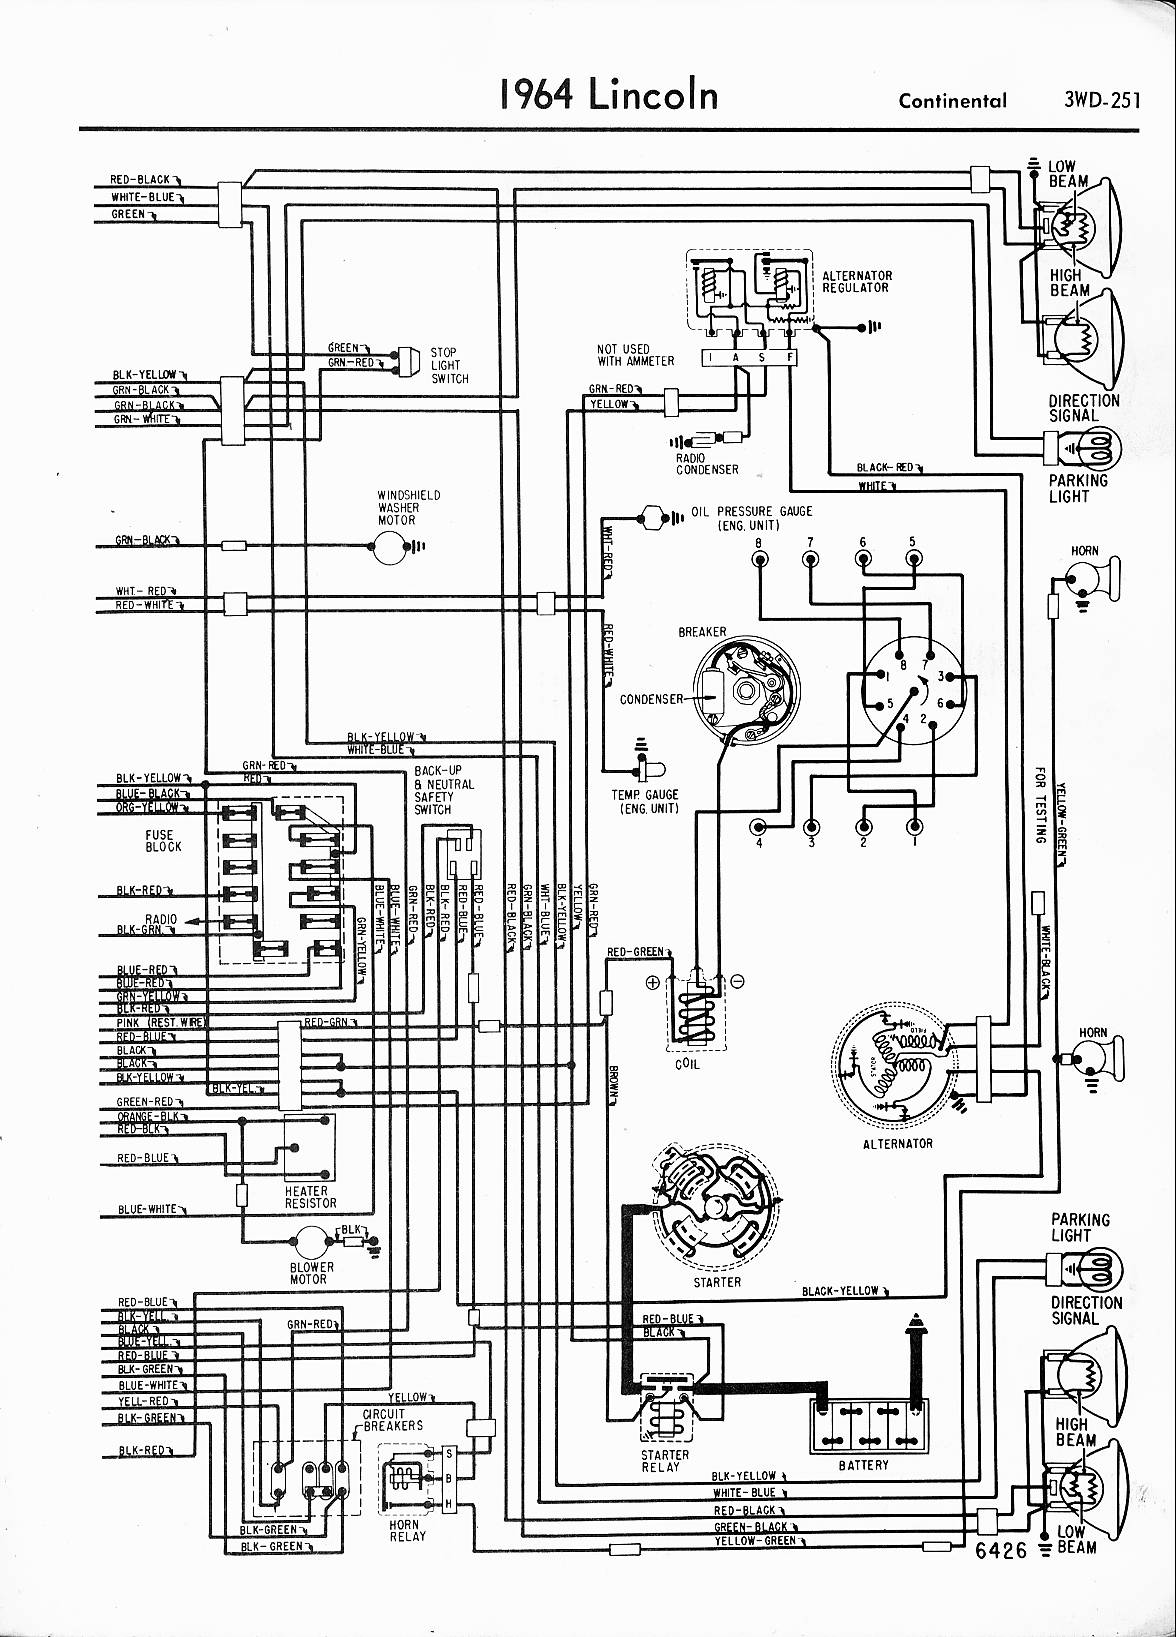 Lincoln Wiring Diagrams - Wiring Liry Diagram Experts on lincoln front suspension, lincoln heater core replacement, lincoln ls relay diagram, lincoln continental horn schematics and diagram, lincoln starting problems, lincoln parts diagrams, lincoln ls wire harness diagram, lincoln brakes, 2000 lincoln ls diagrams, lincoln transmission diagrams, 92 lincoln air suspension diagrams,